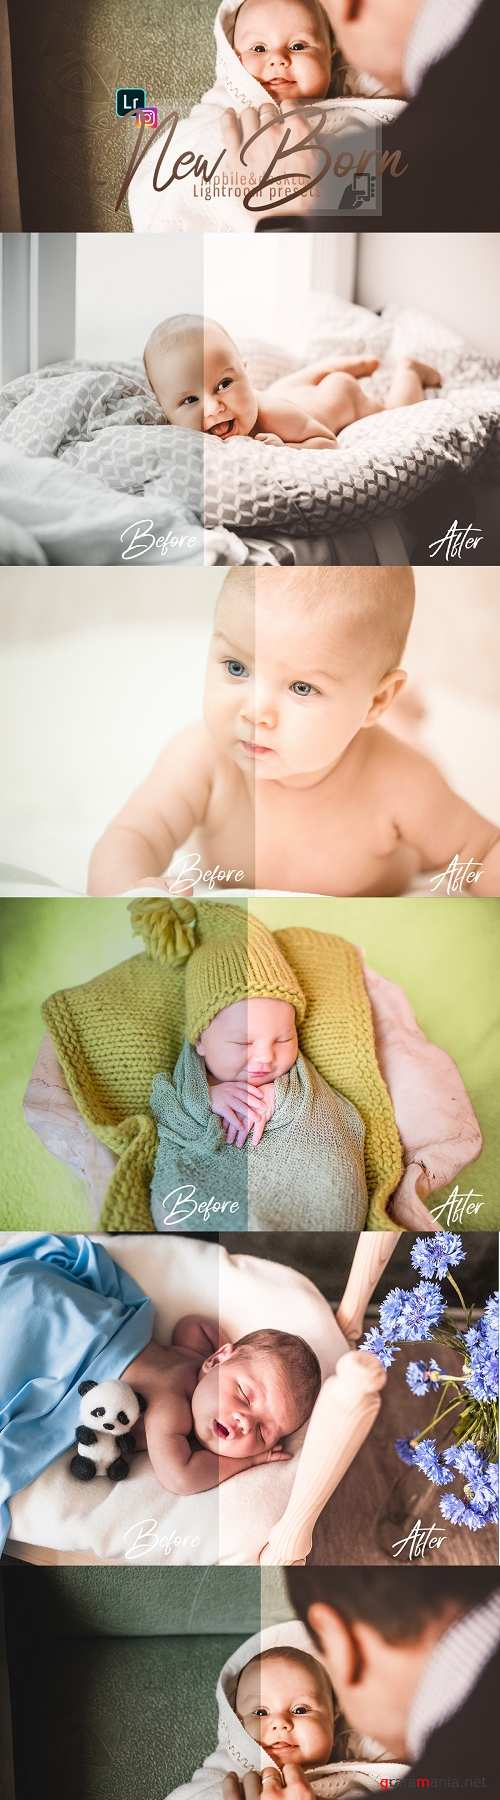 Download presets NewBorn Mobile & Desktop Lightroom Presets  - 269819